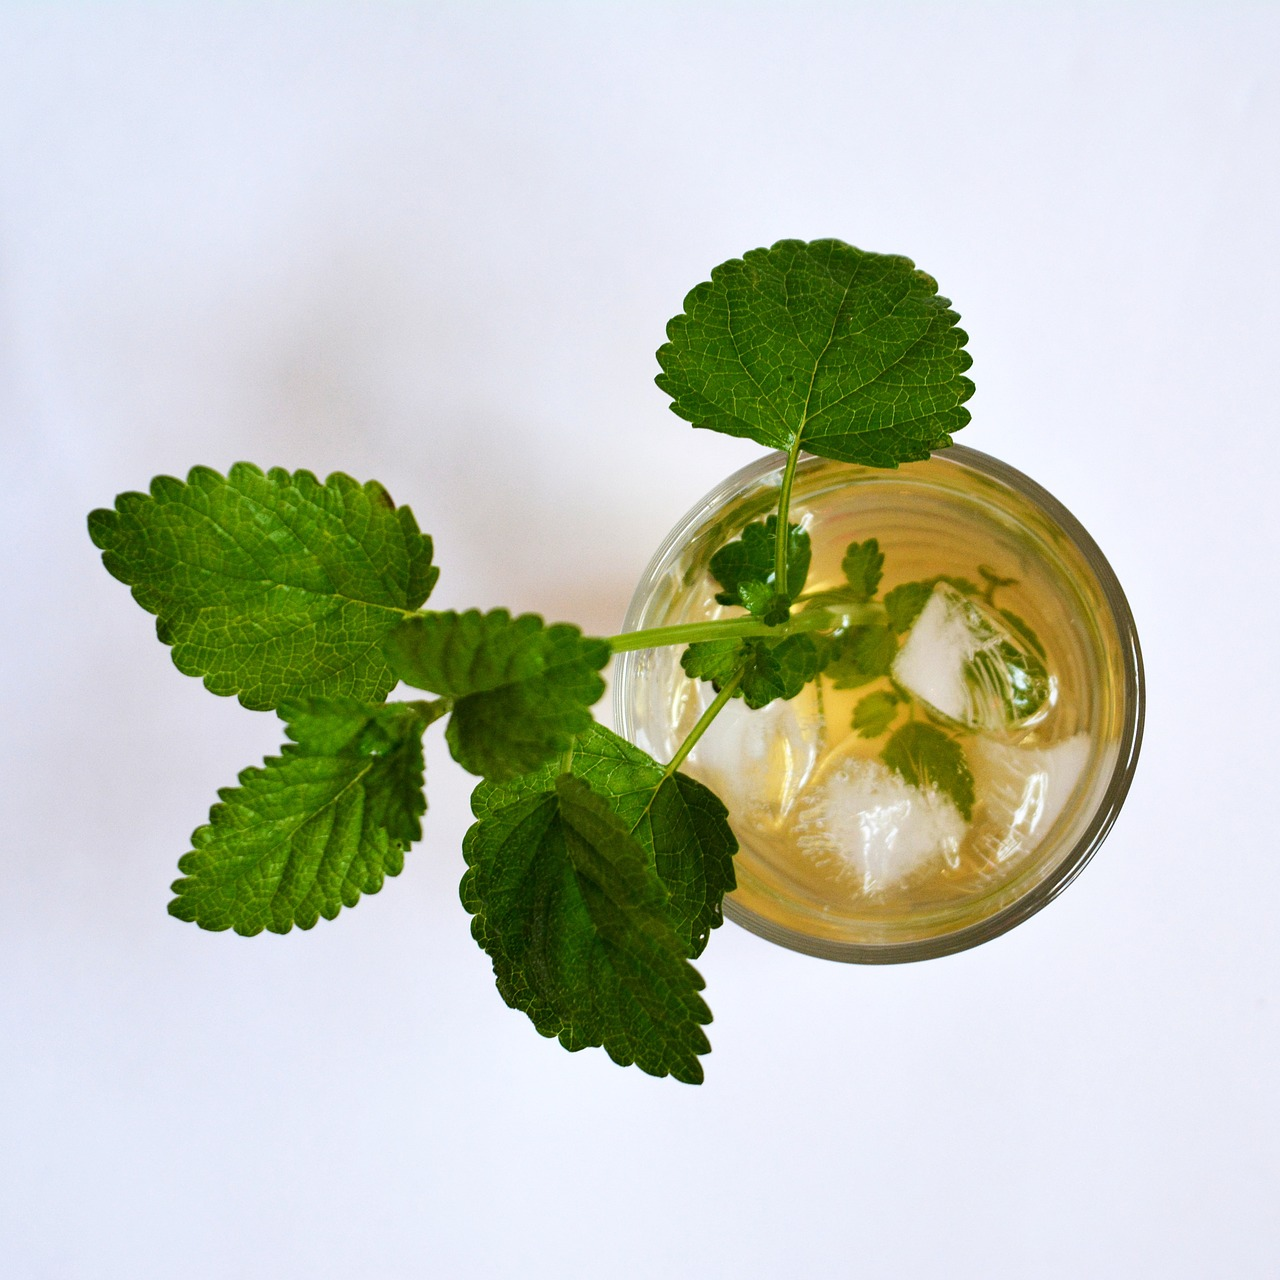 Lemon Balm Magic: Soothing The Oppressed Spirit